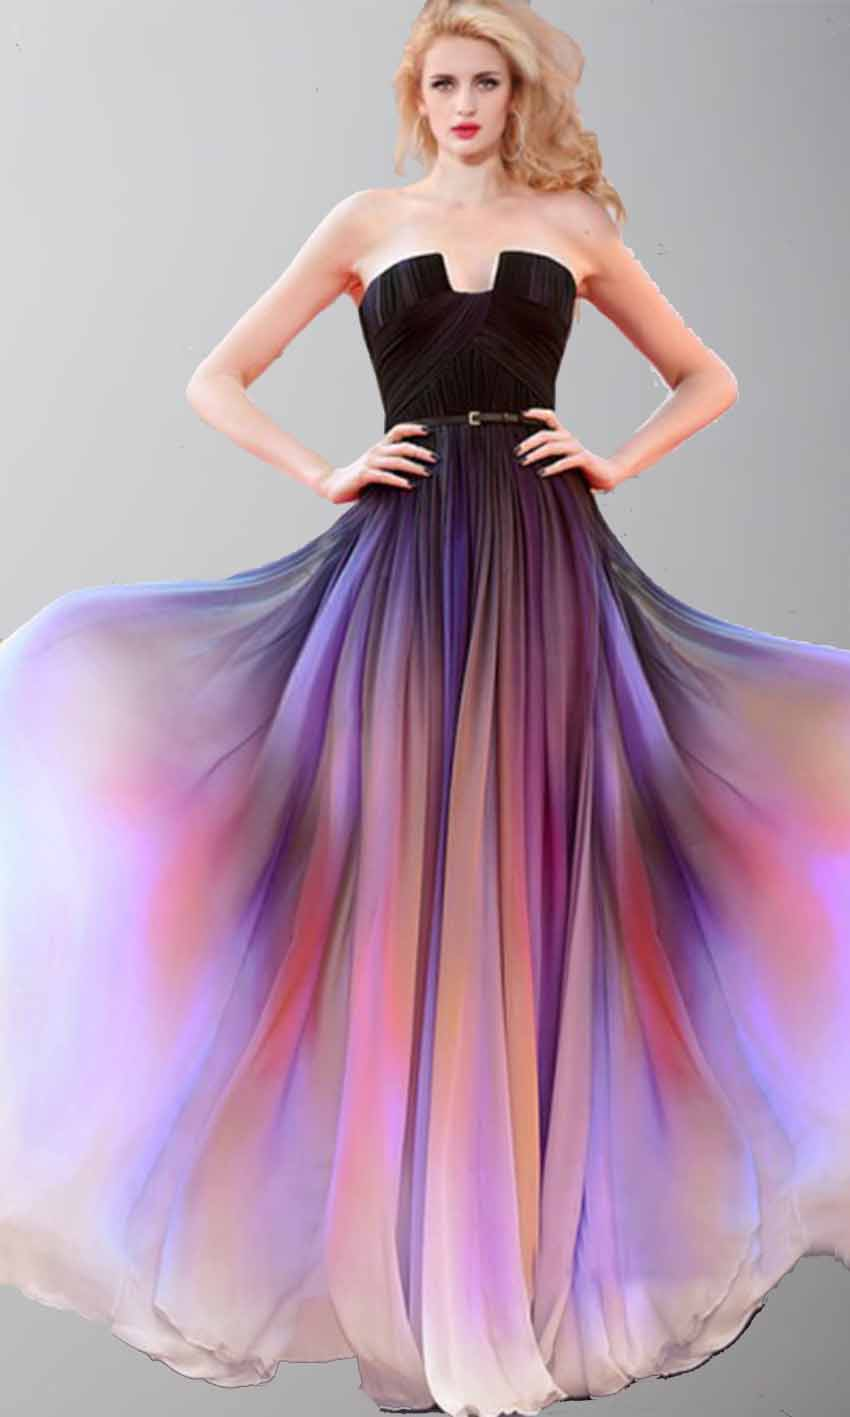 097eae338308c Beautiful Sunset Long Ombre Cape Prom Dresses KSP421 [KSP421] - £110.00 :  Cheap Prom Dress UK, ...